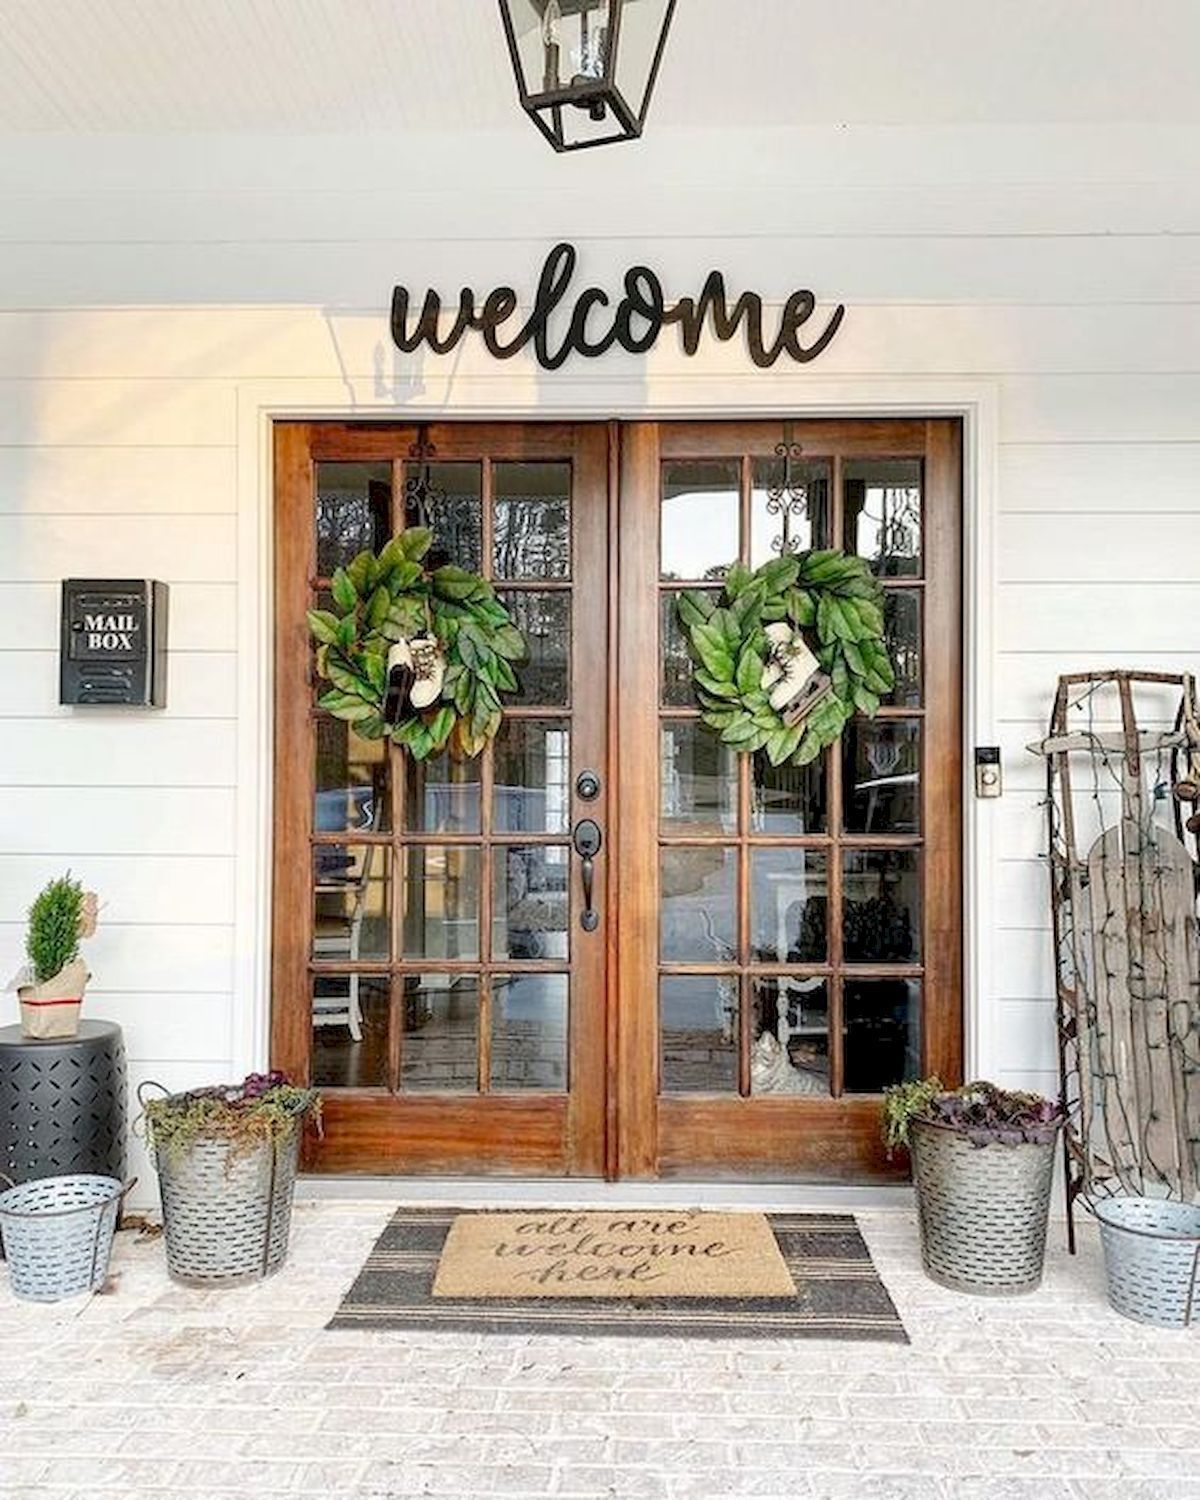 35 Beautiful Spring Decorations For Porch 30 House With Porch Front Porch Decorating House Exterior